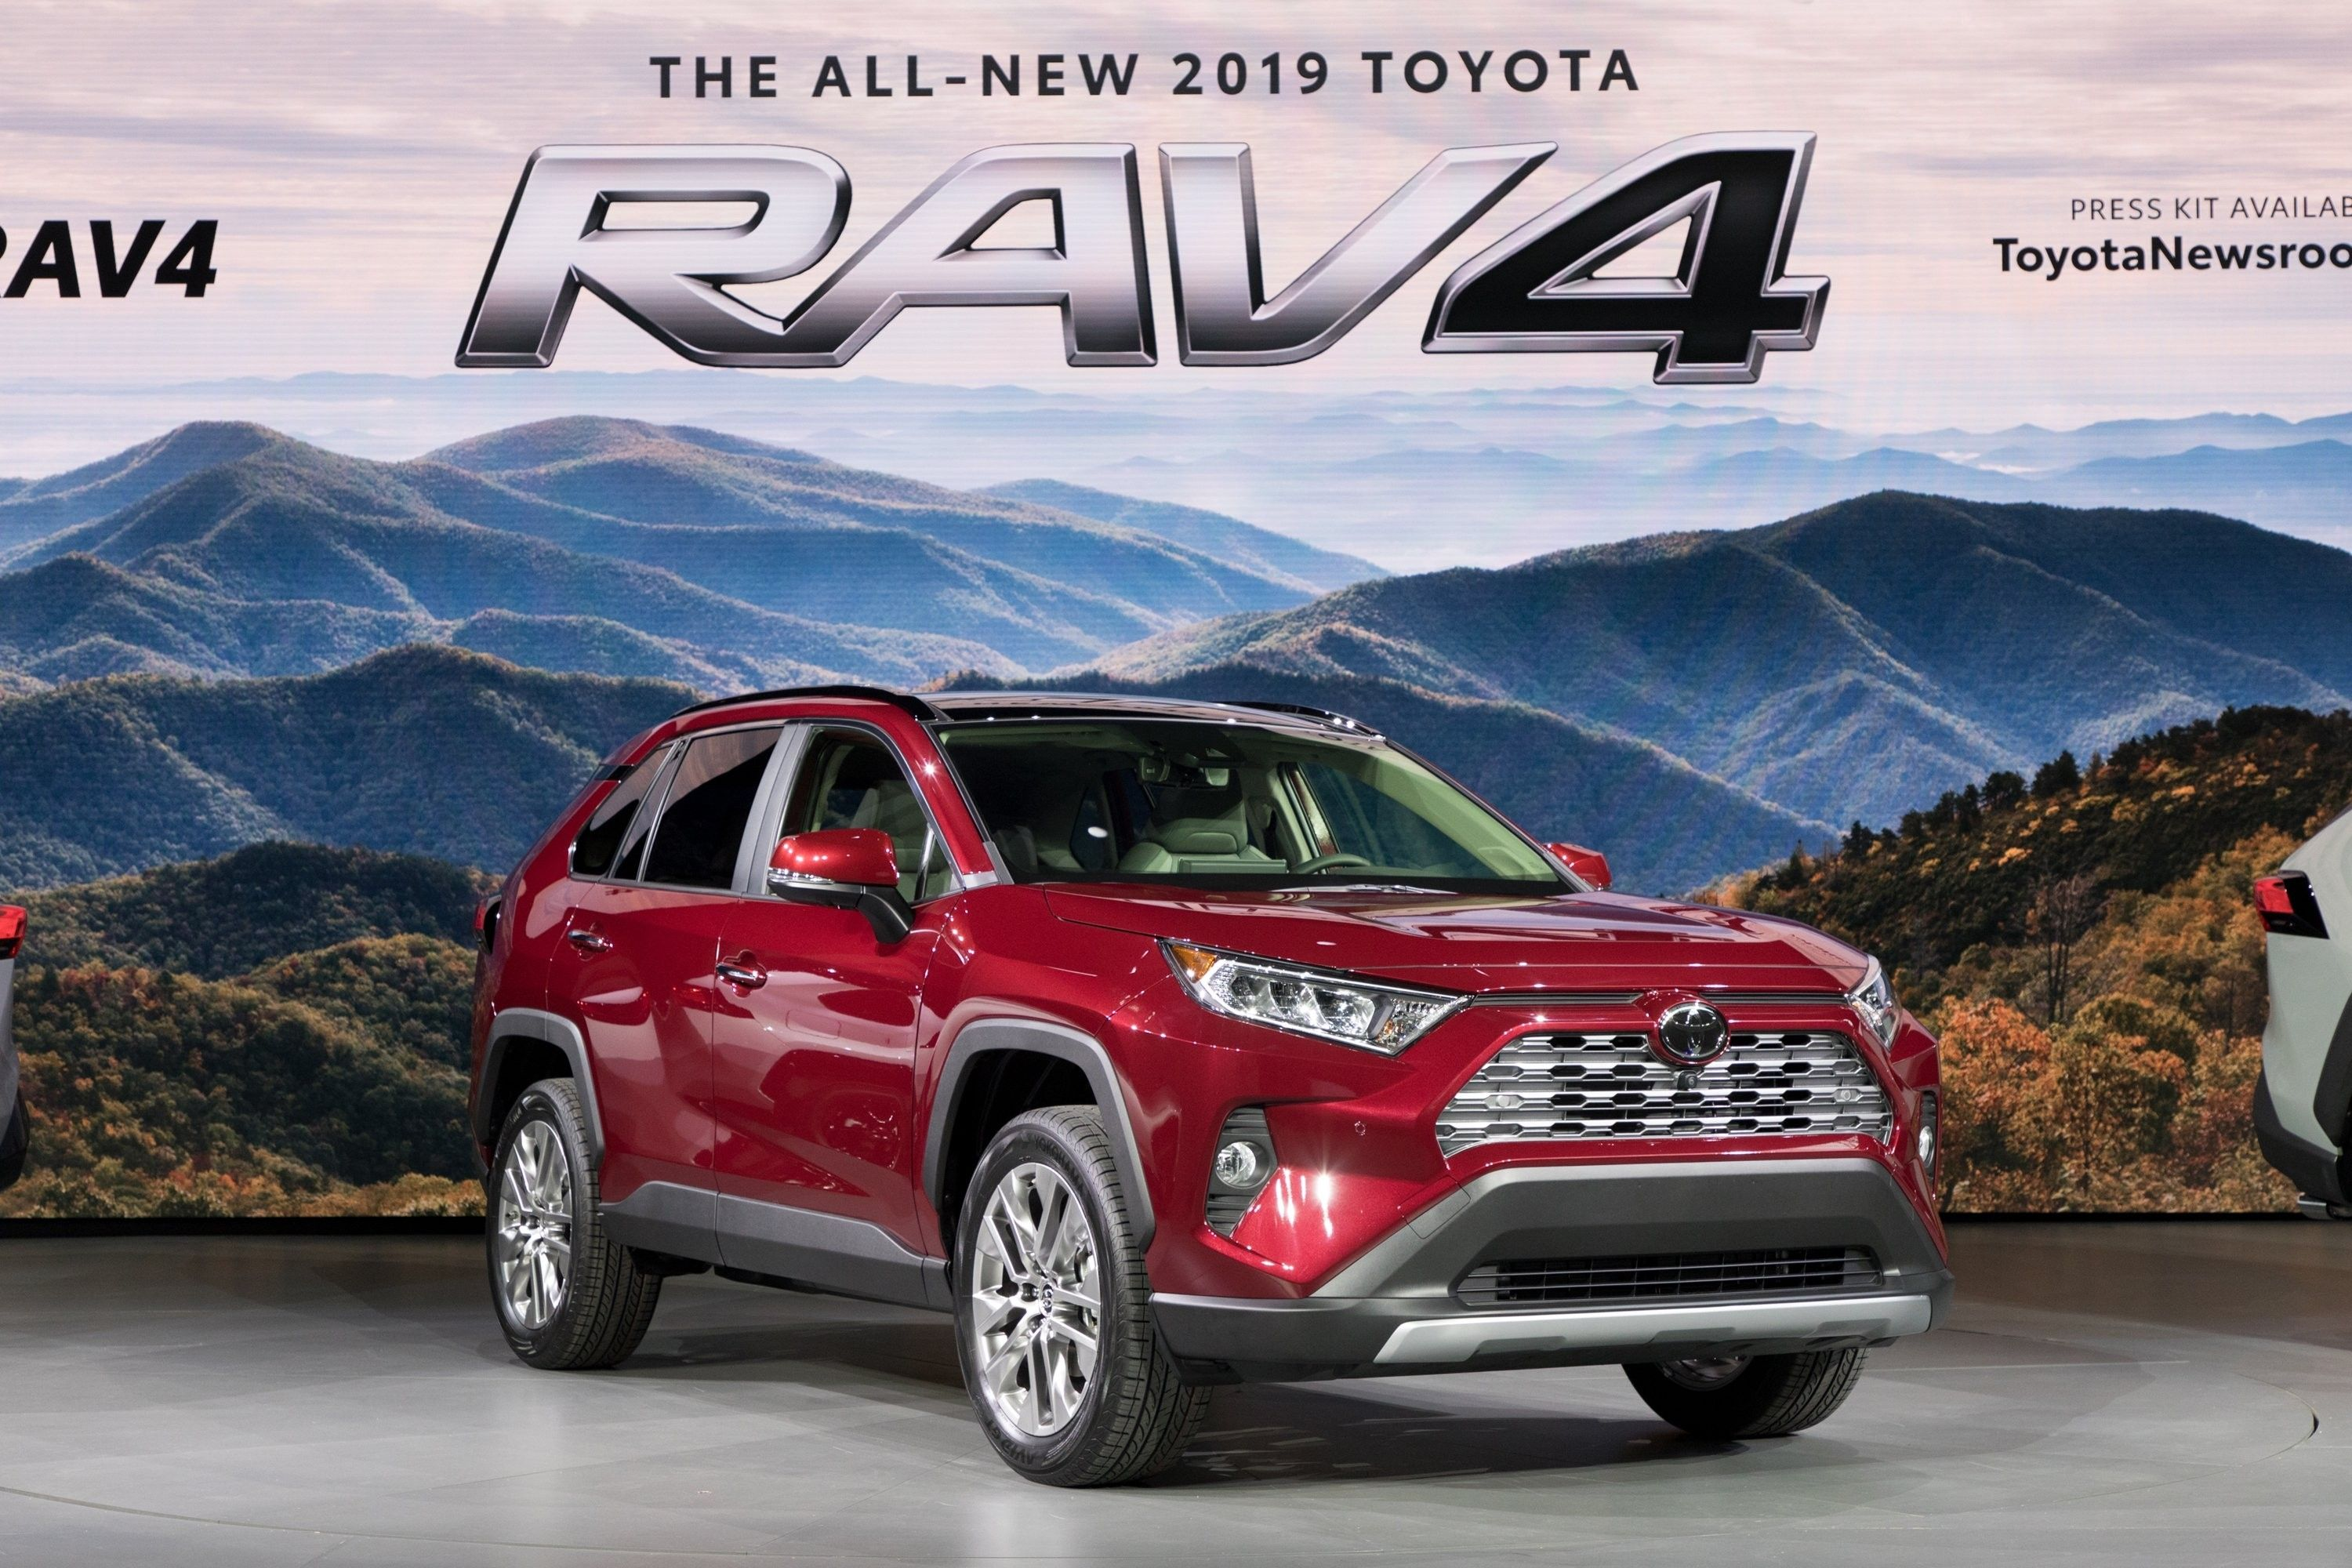 2019 Toyota New Models Concept Redesign And Review Mitsubishi Outlander Sport Nissan Tiida Toyota